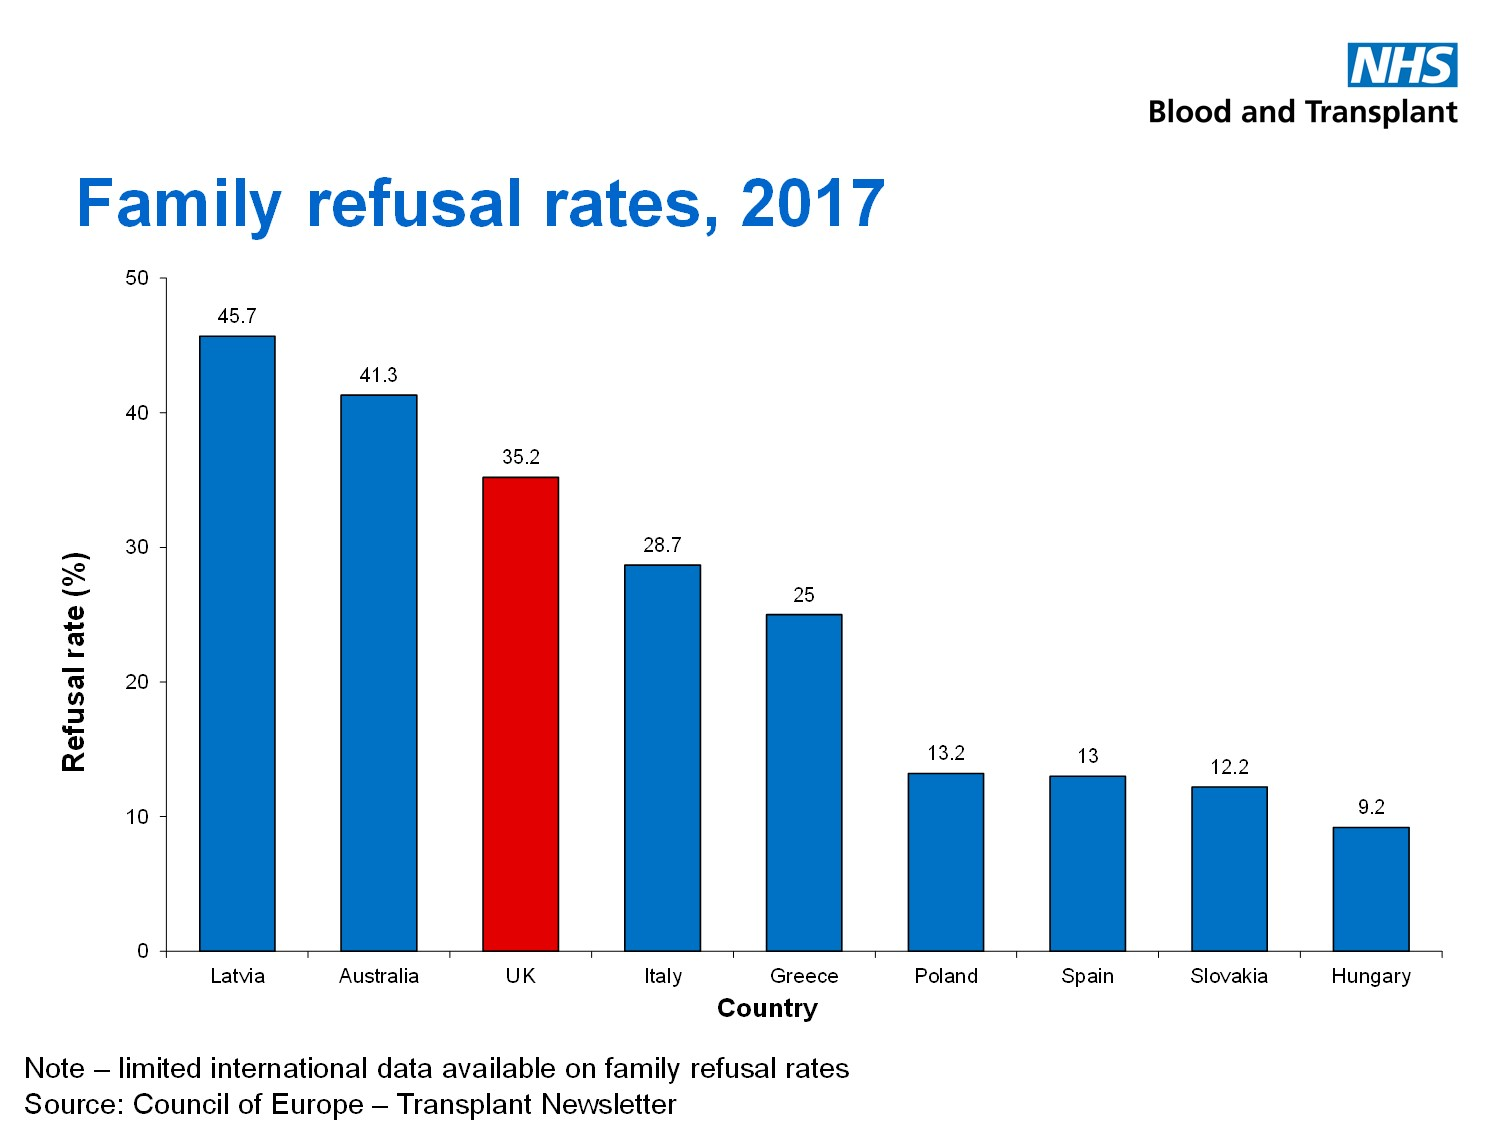 A bar graph displaying family refusal rates in 2017